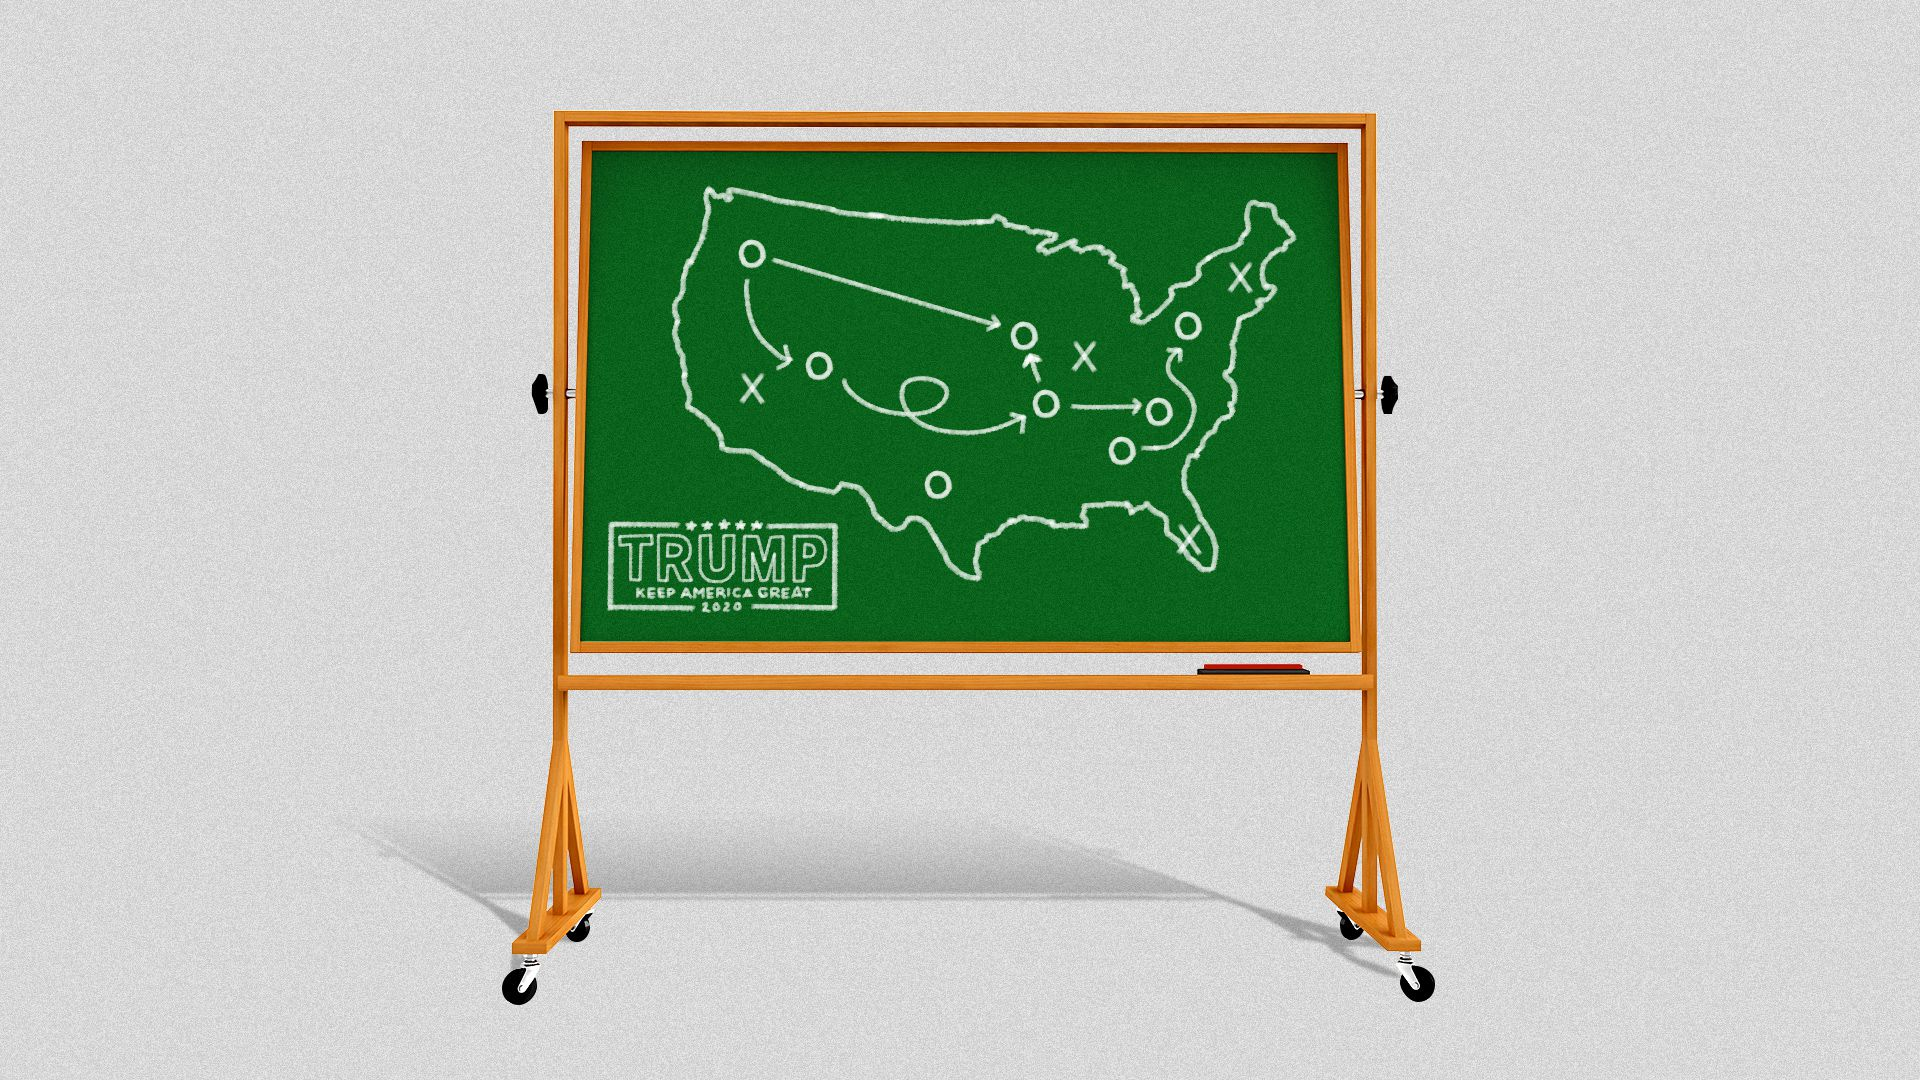 Illustration of a chalk board that says Trump 2020 with a map of the United States and diagrams like a football play